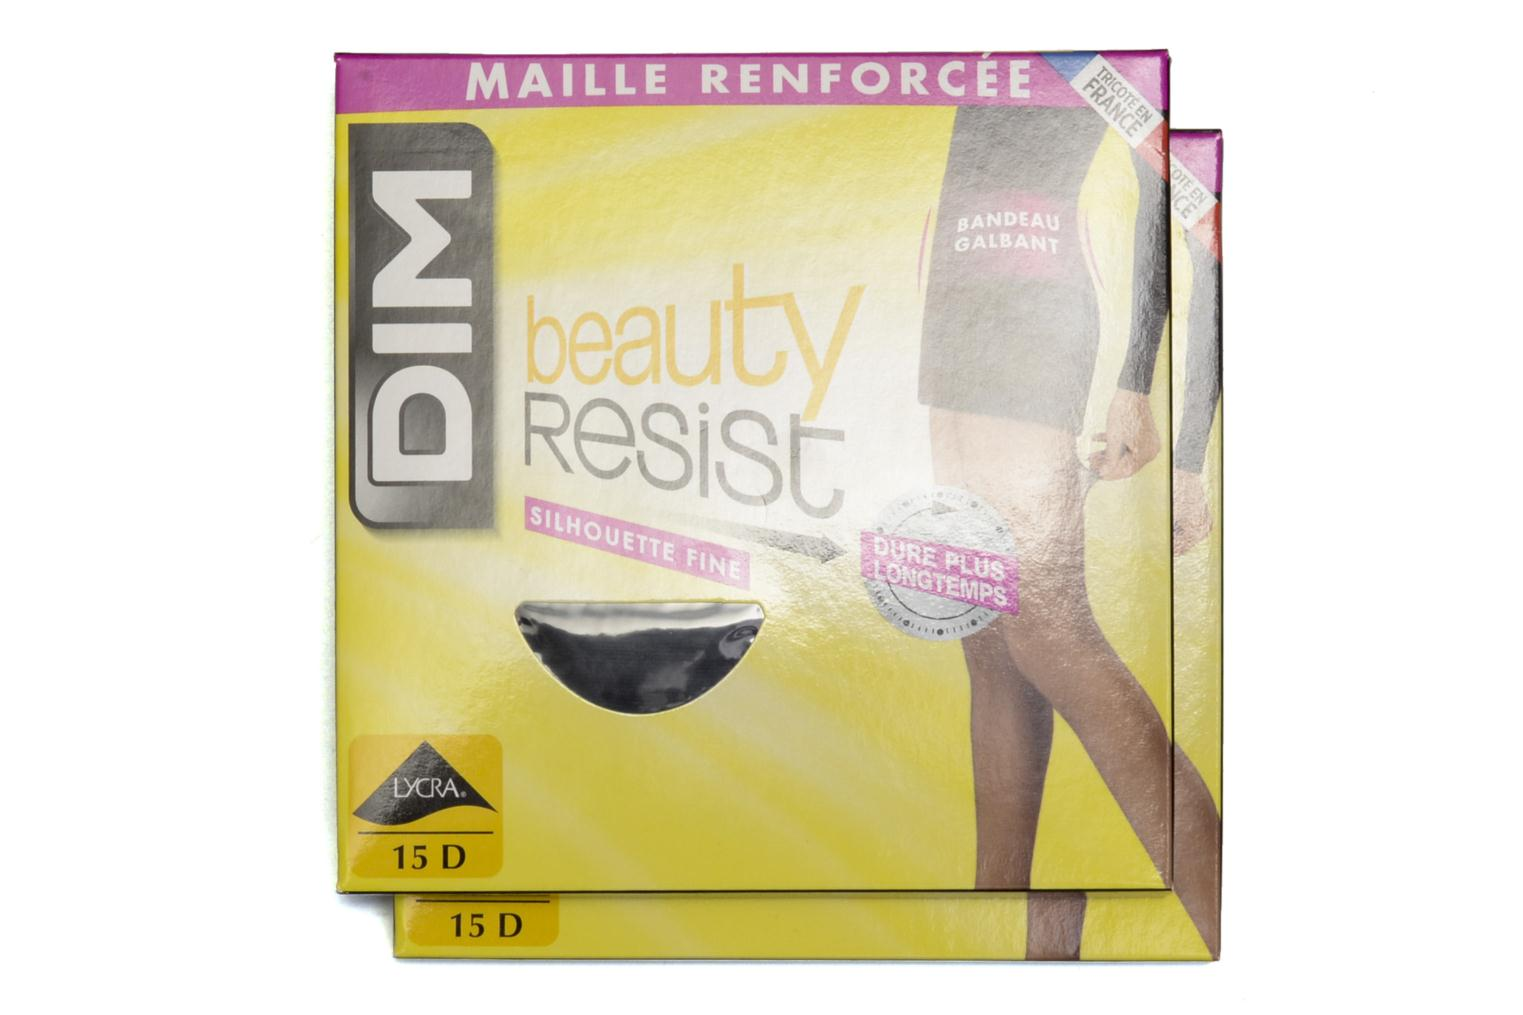 Collant BEAUTY RESIST SILHOUETTE FINE Pack de 2 Noir